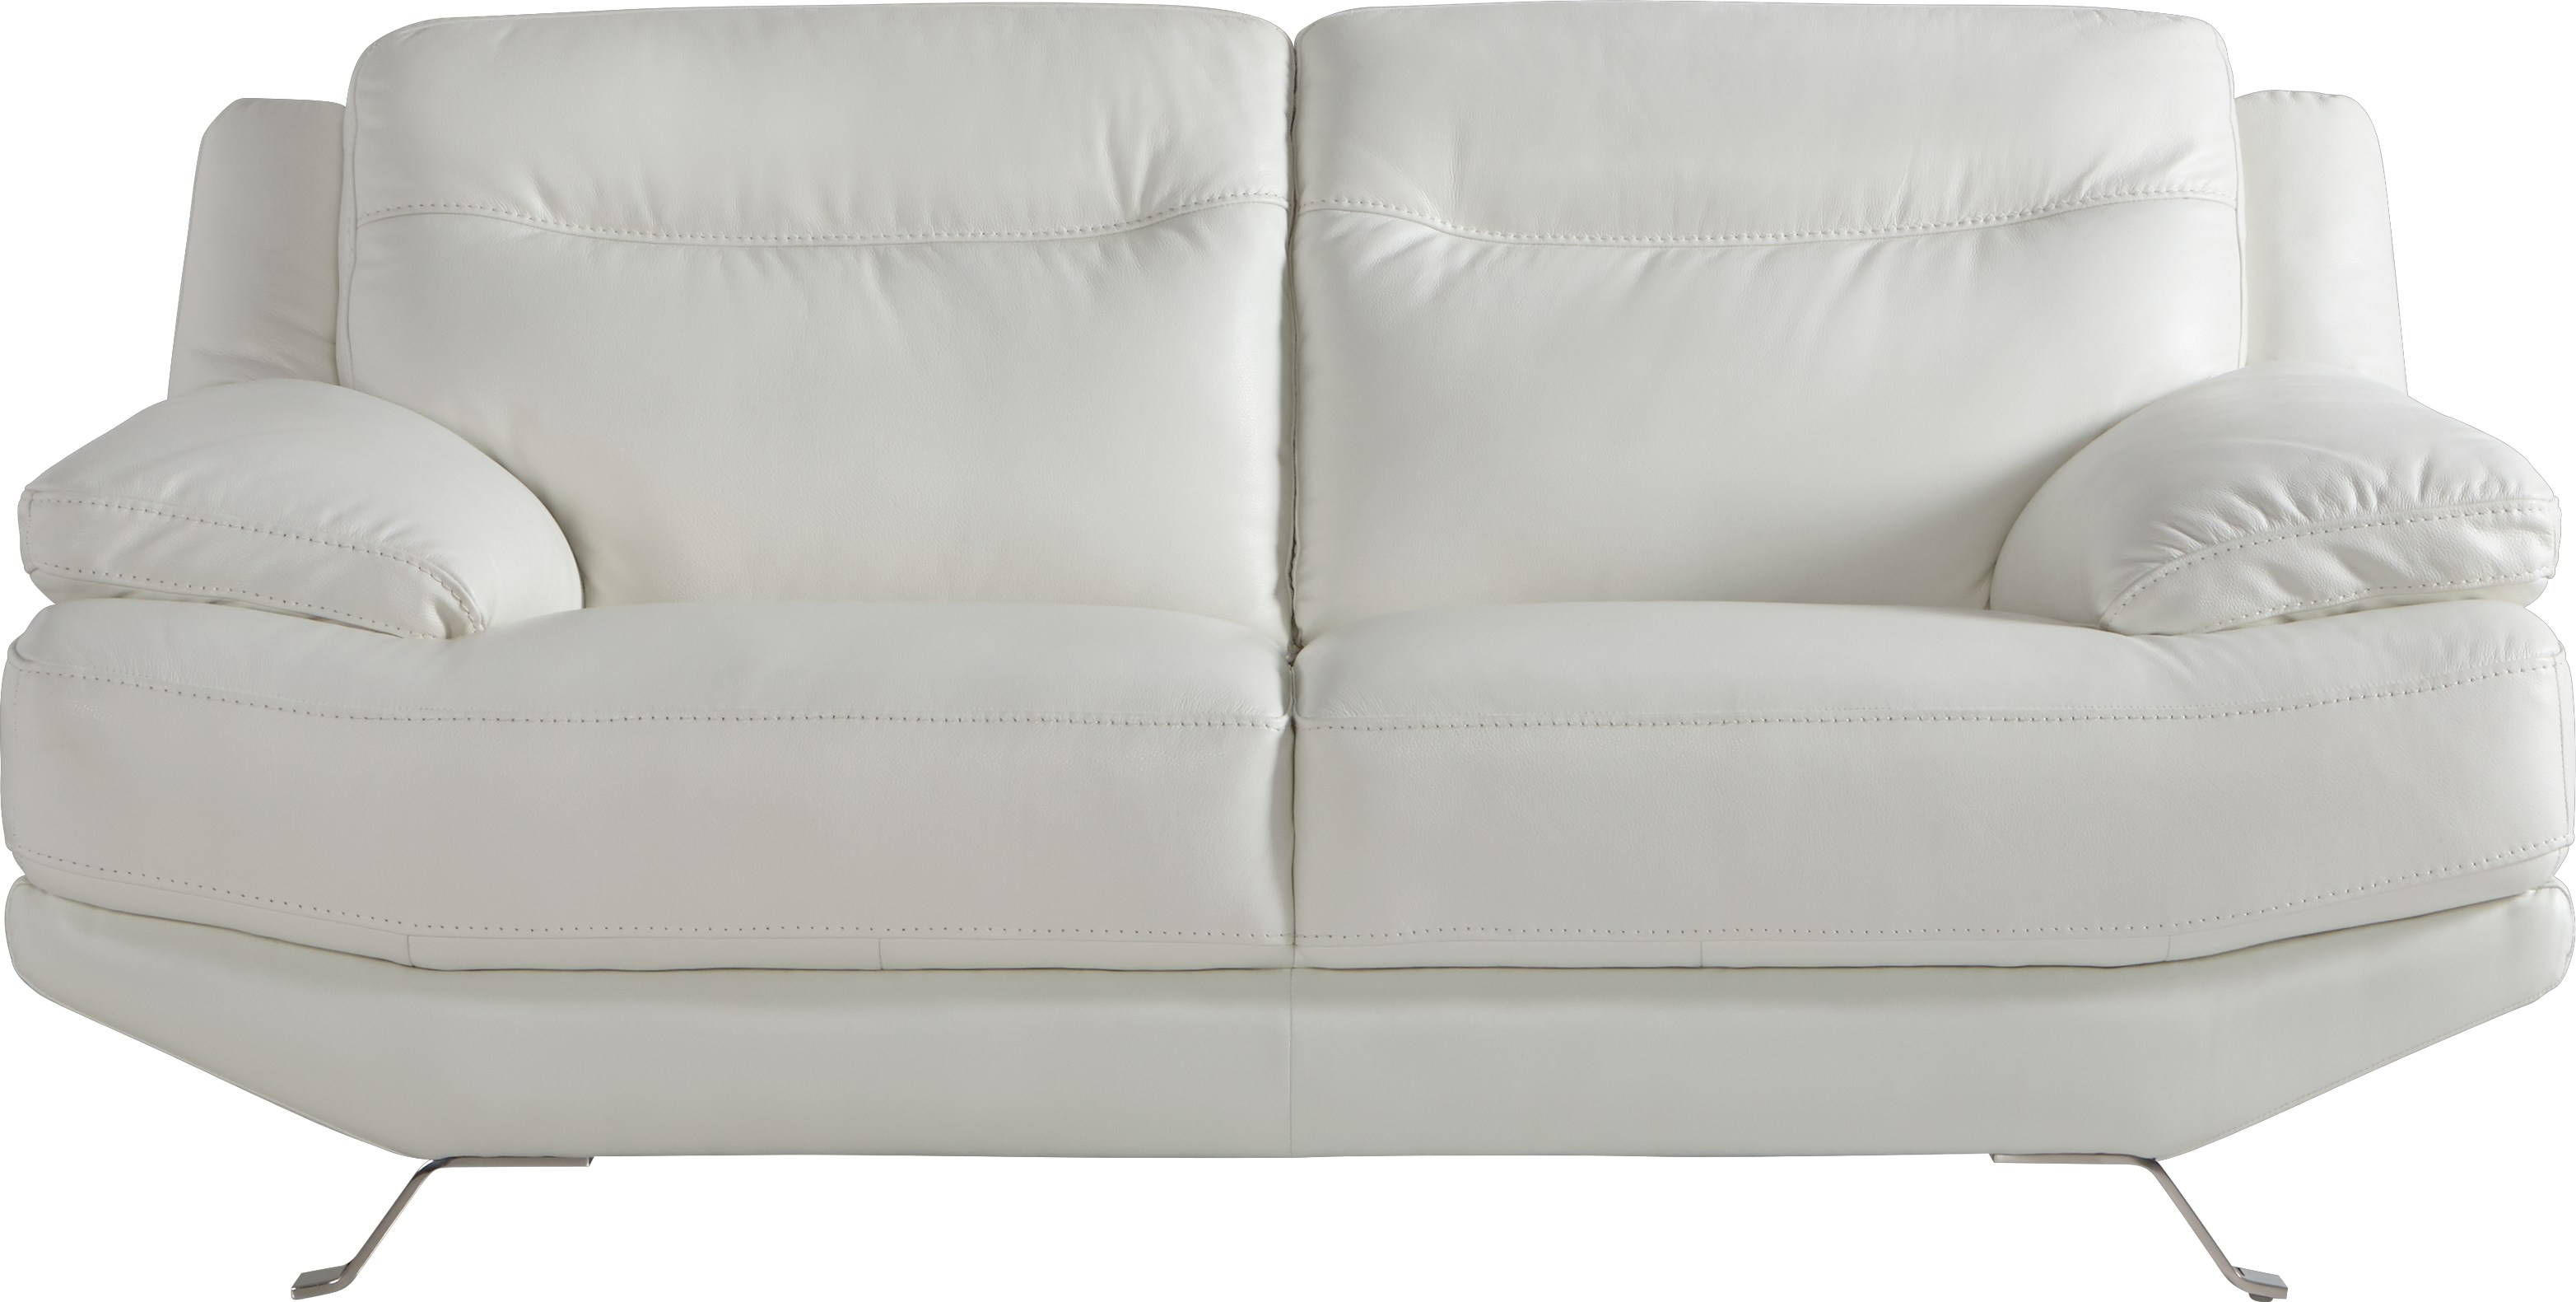 Sofia Vergara Castilla White Leather Loveseat - Leather Loveseats (White)